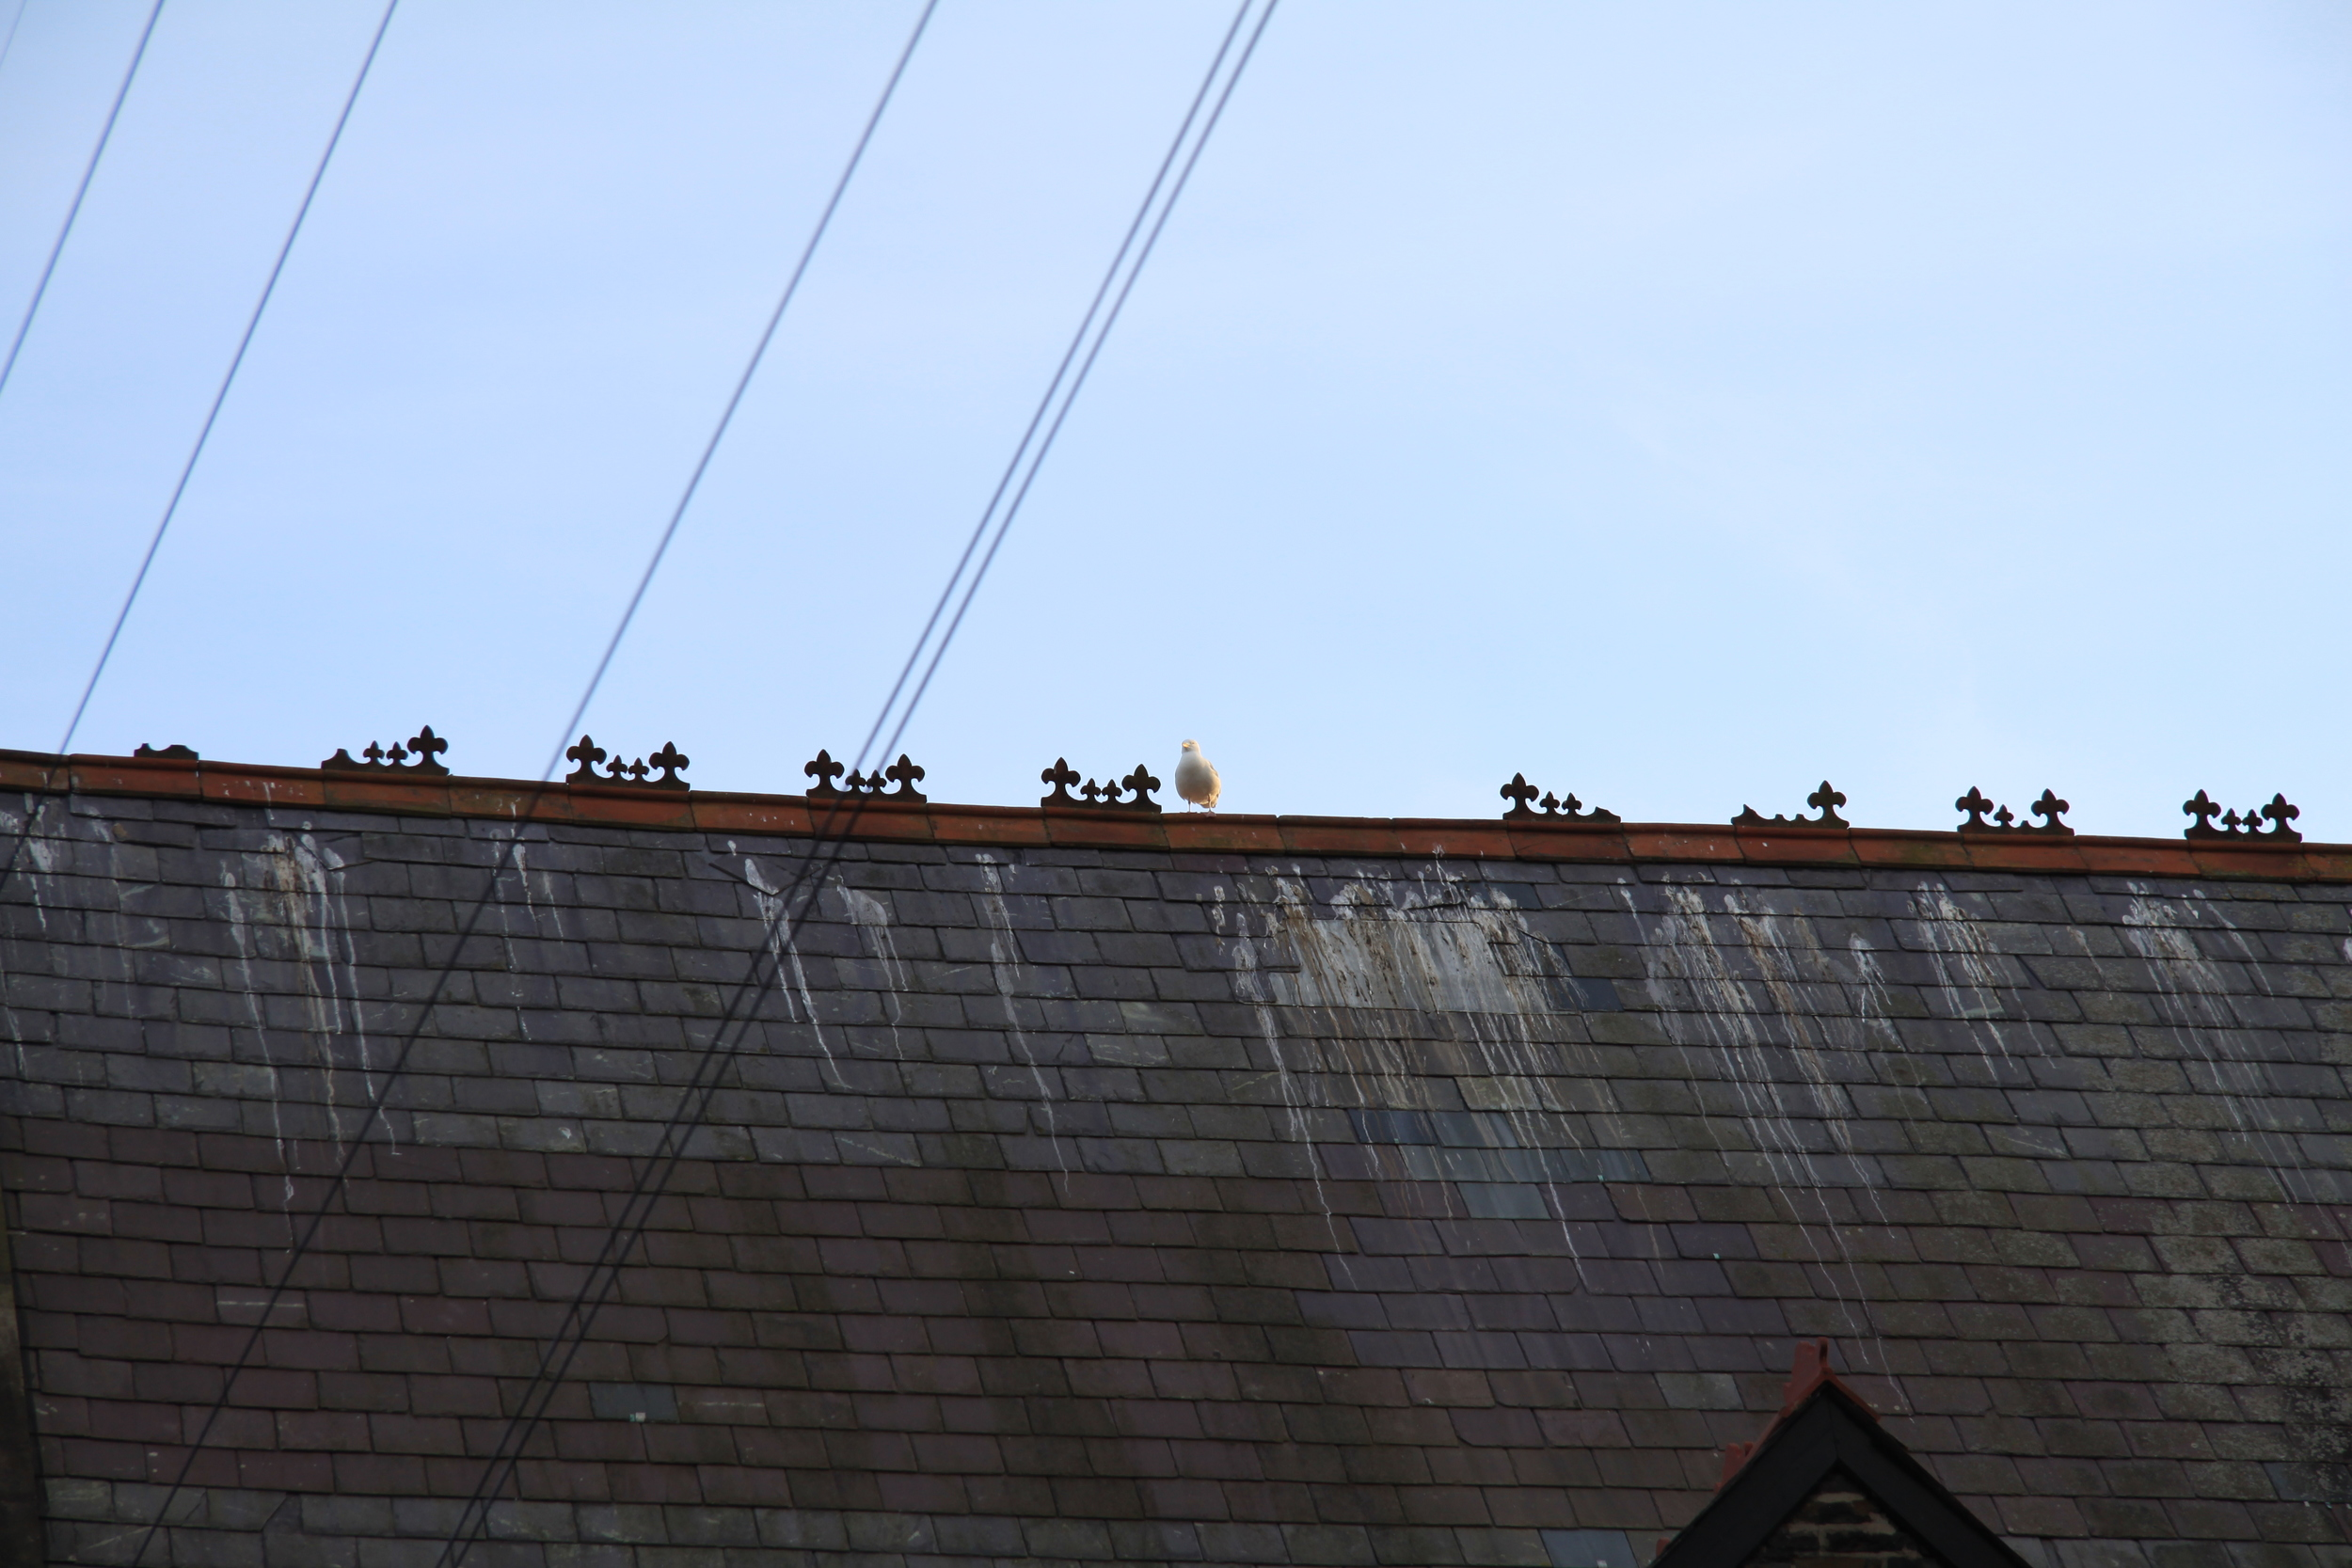 Only one lone gull standing guard over the 'courtyard' ... but the poo on the roof gives credence to the fact that the flock was not far behind ....